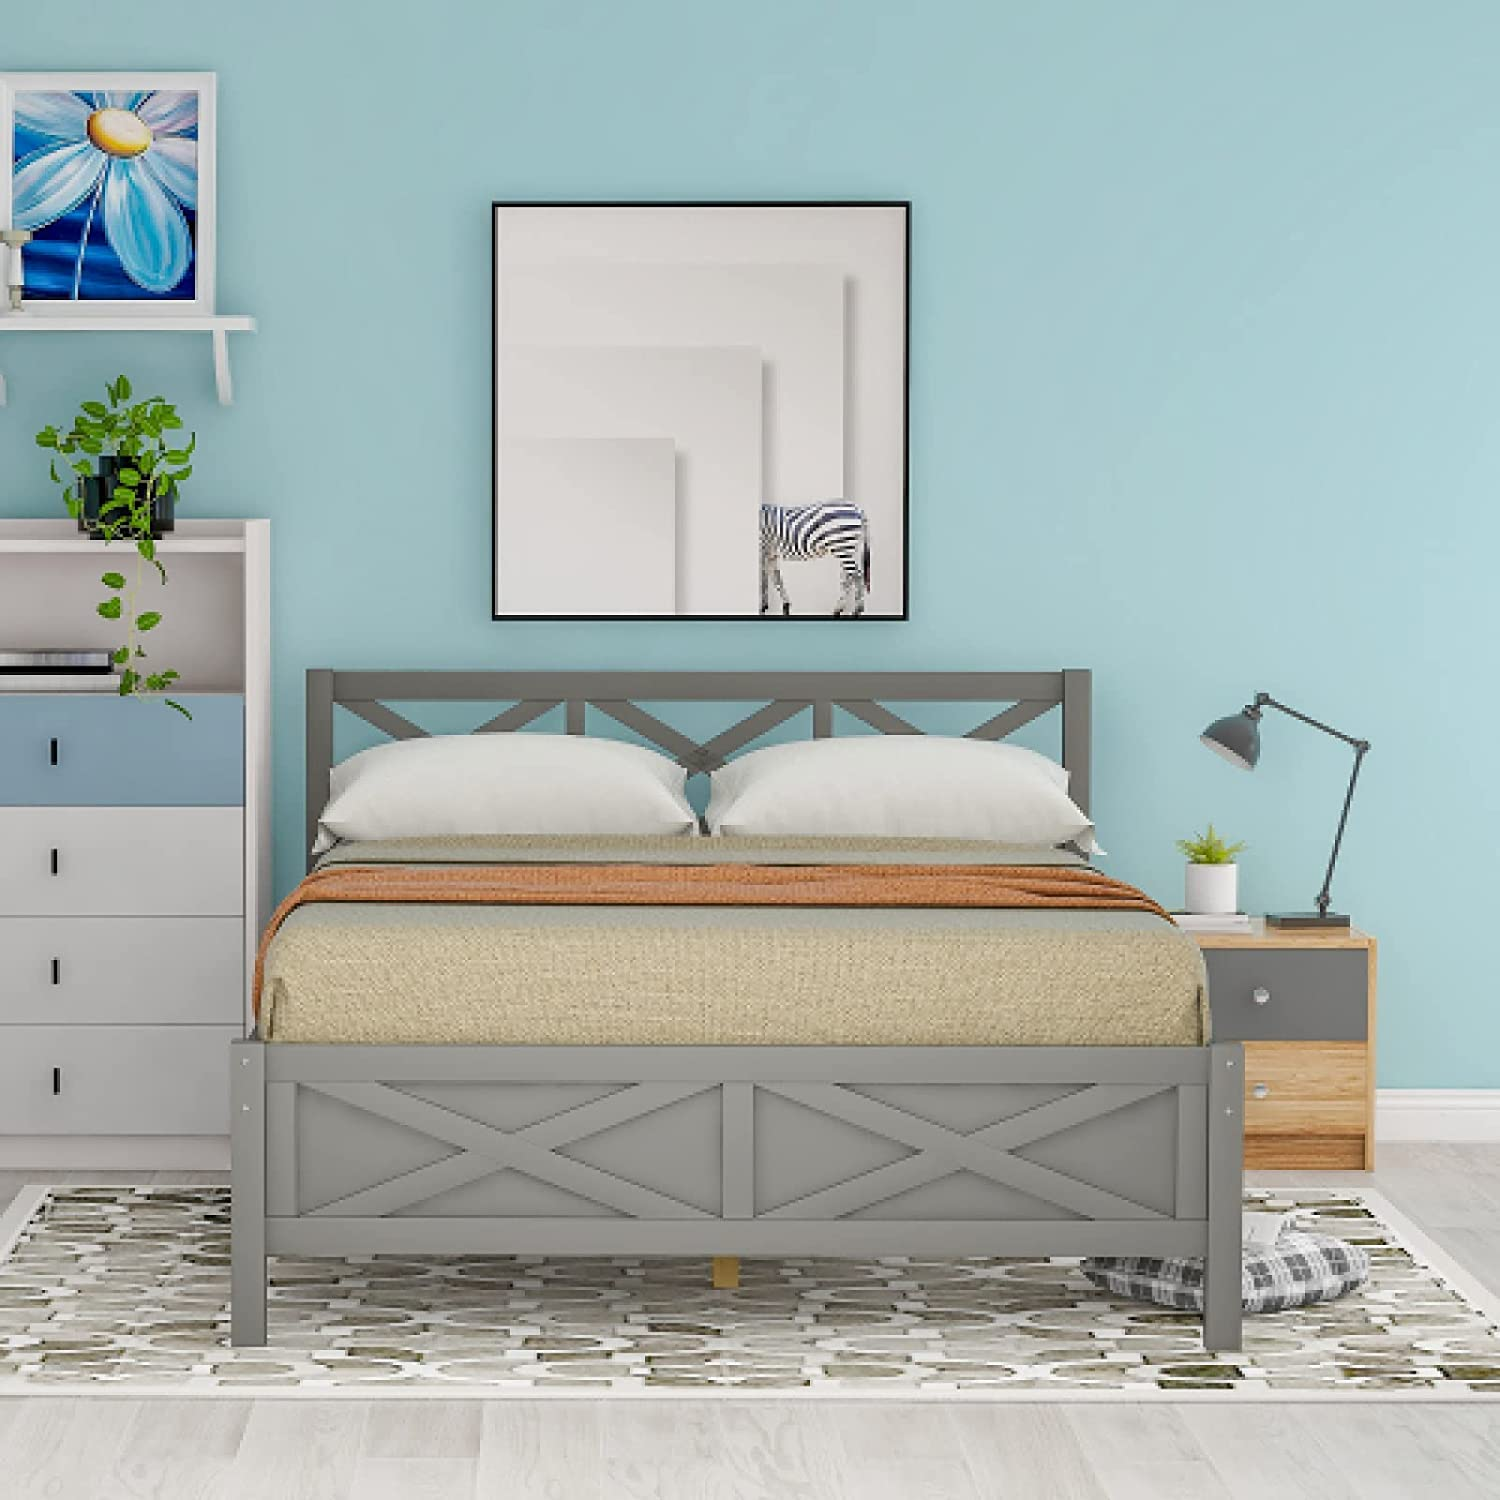 Queen Free supreme shipping on posting reviews Size Wooden Platform Bed Support with X-Shaped Extra Legs